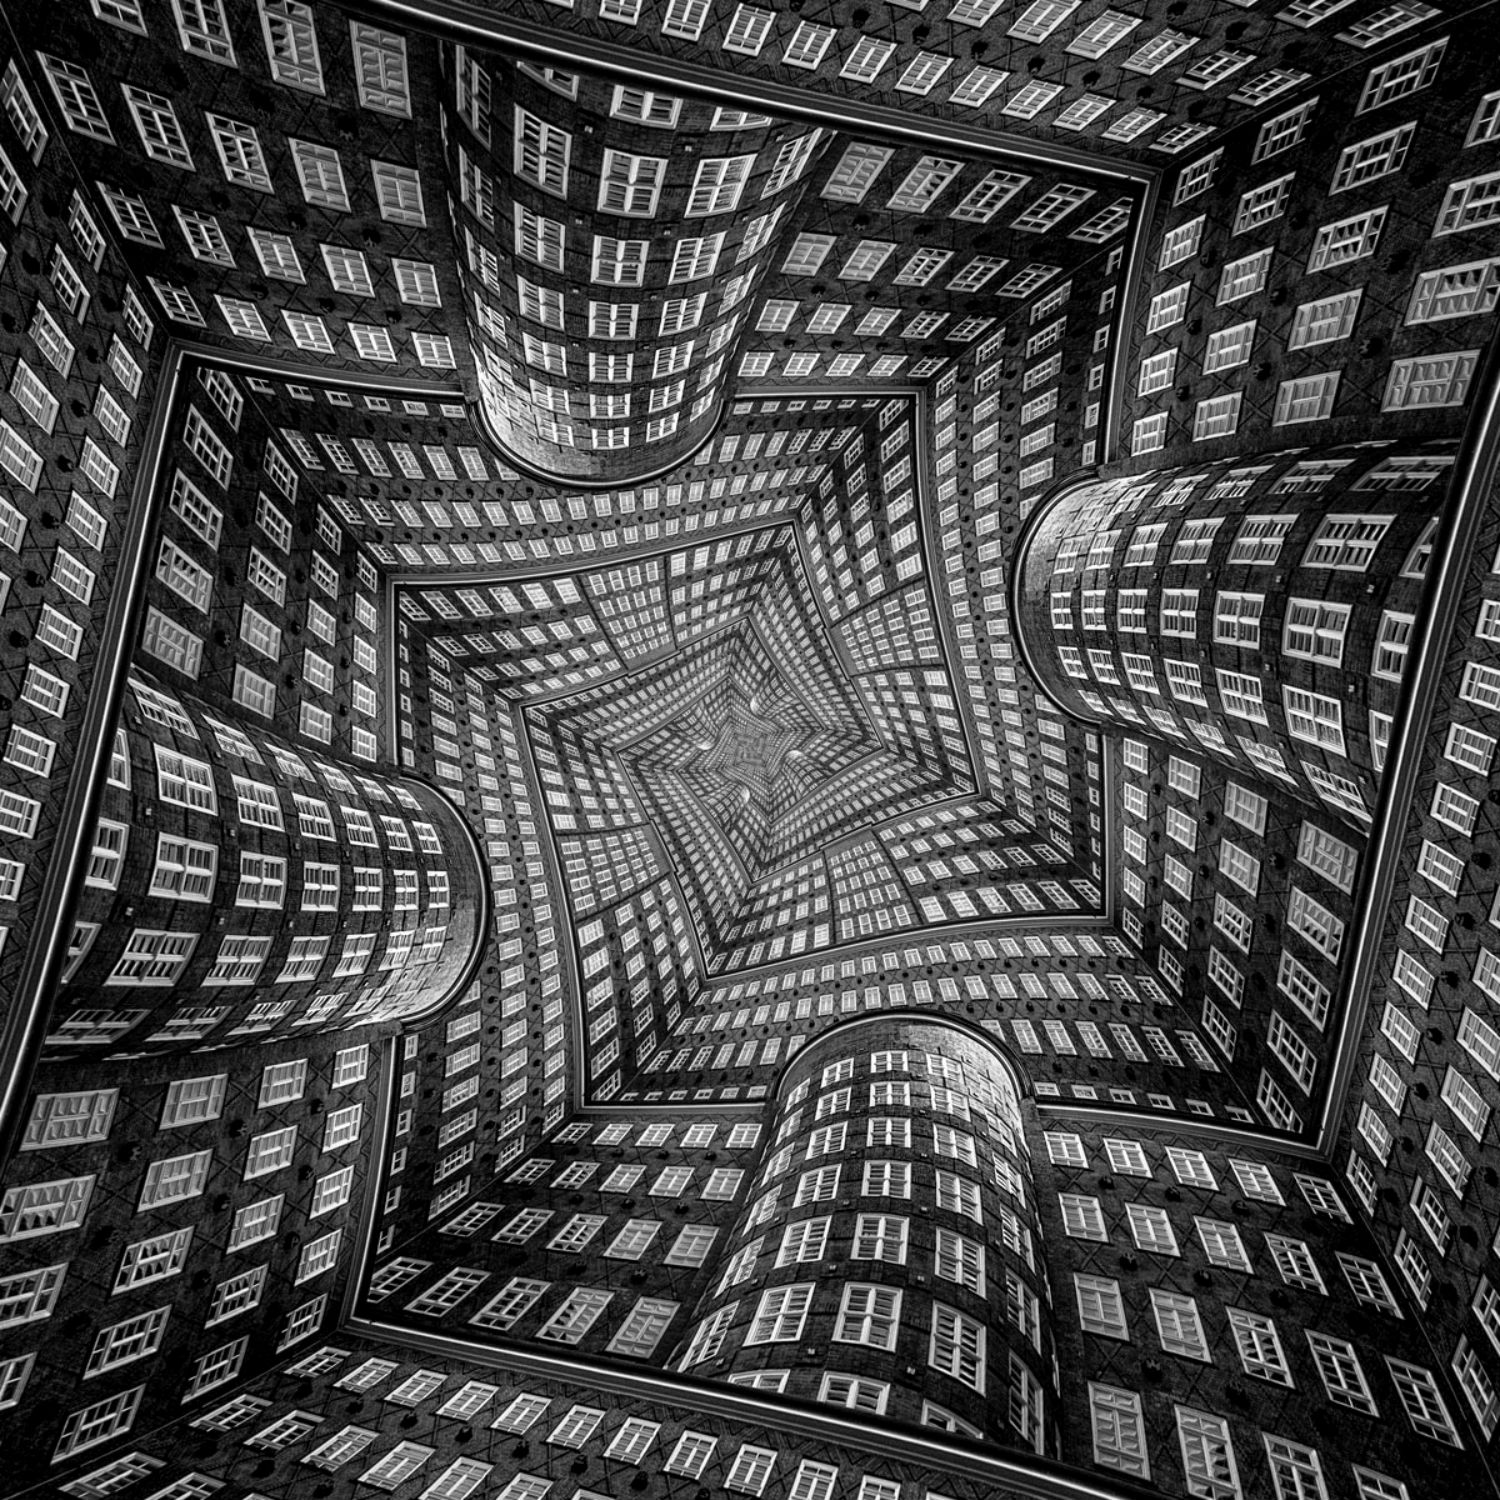 Markus studtmann architecture Illusion digital art black white